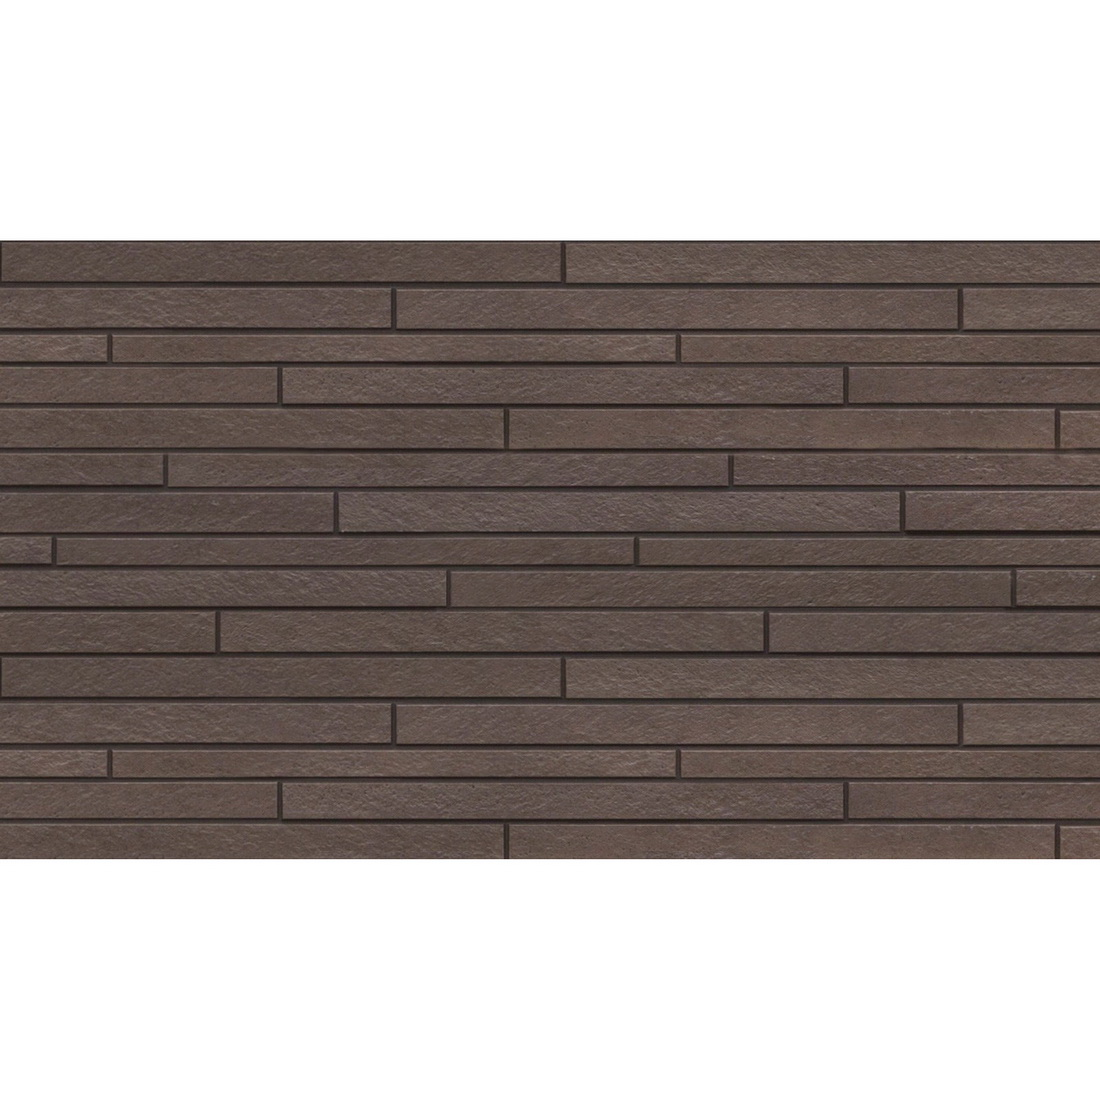 Territory Riverbed 16x455x3030mm Panel Pebble 2 Sheet